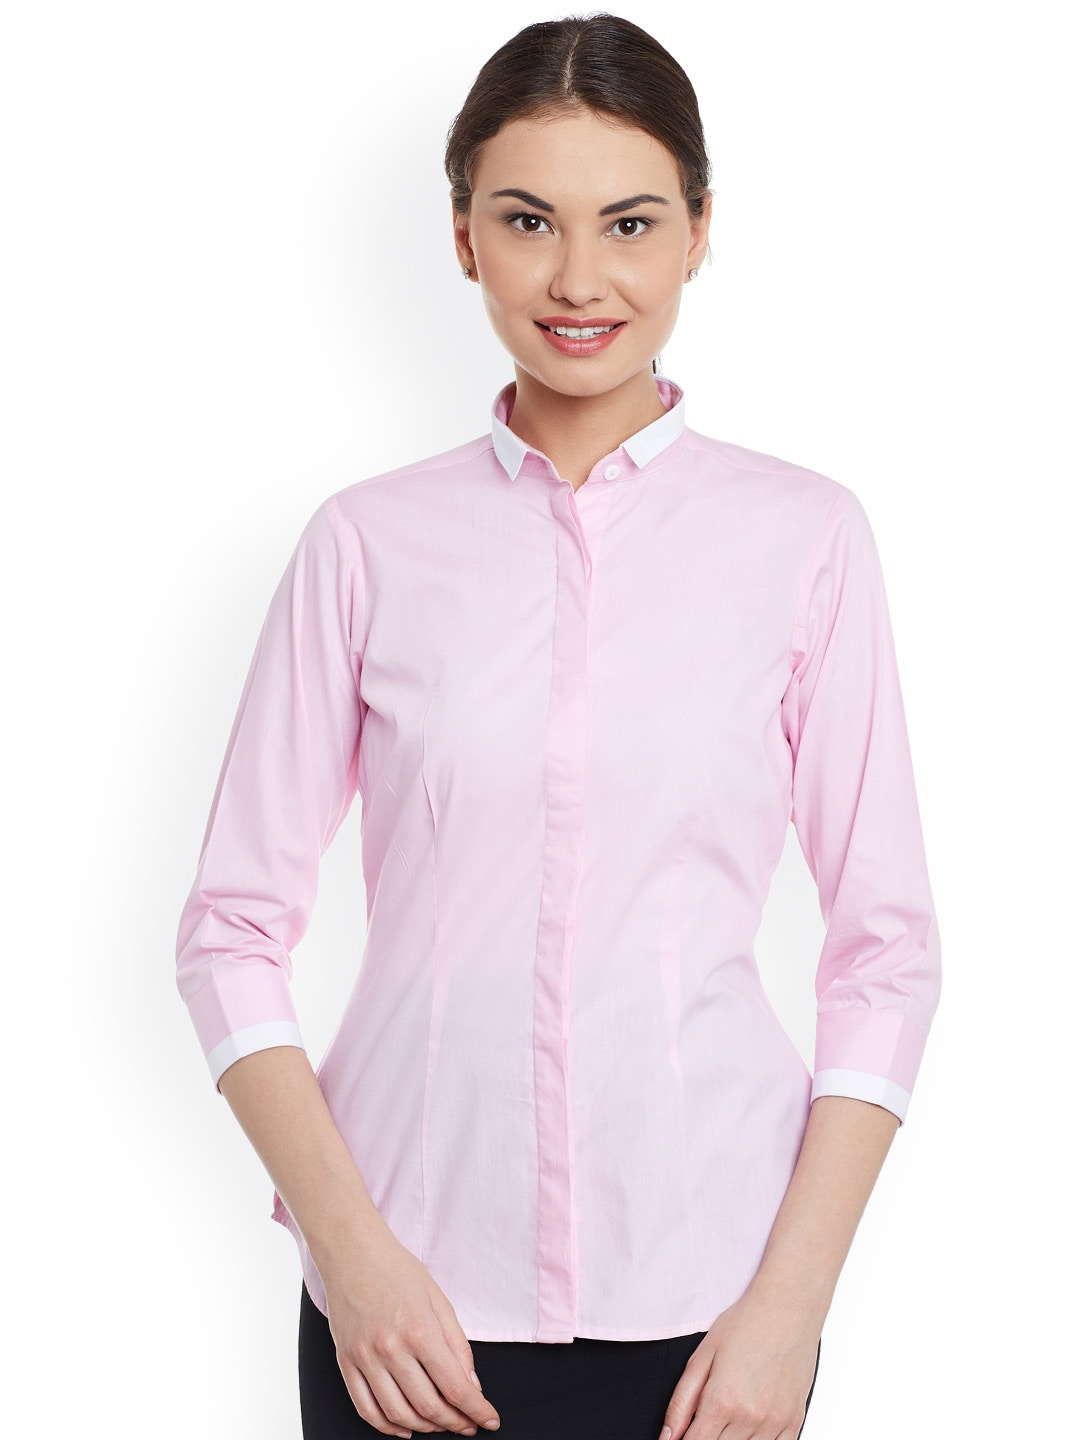 2f21ac1e7144f Women Formal Shirt - Buy Women Formal Shirt online in India